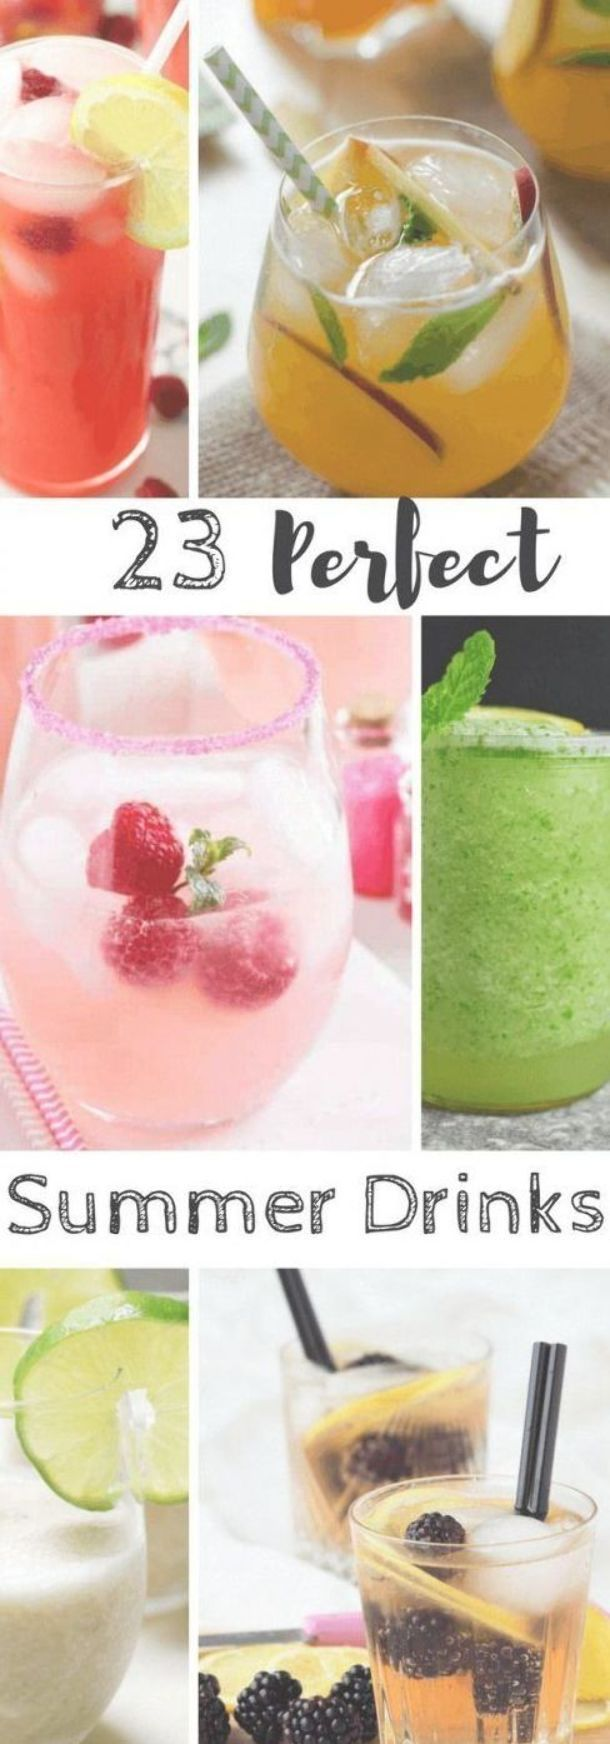 Summer drinks non-alcoholic #nonalcoholicdrinks #drinks #drinks #nonalcoholic #n…